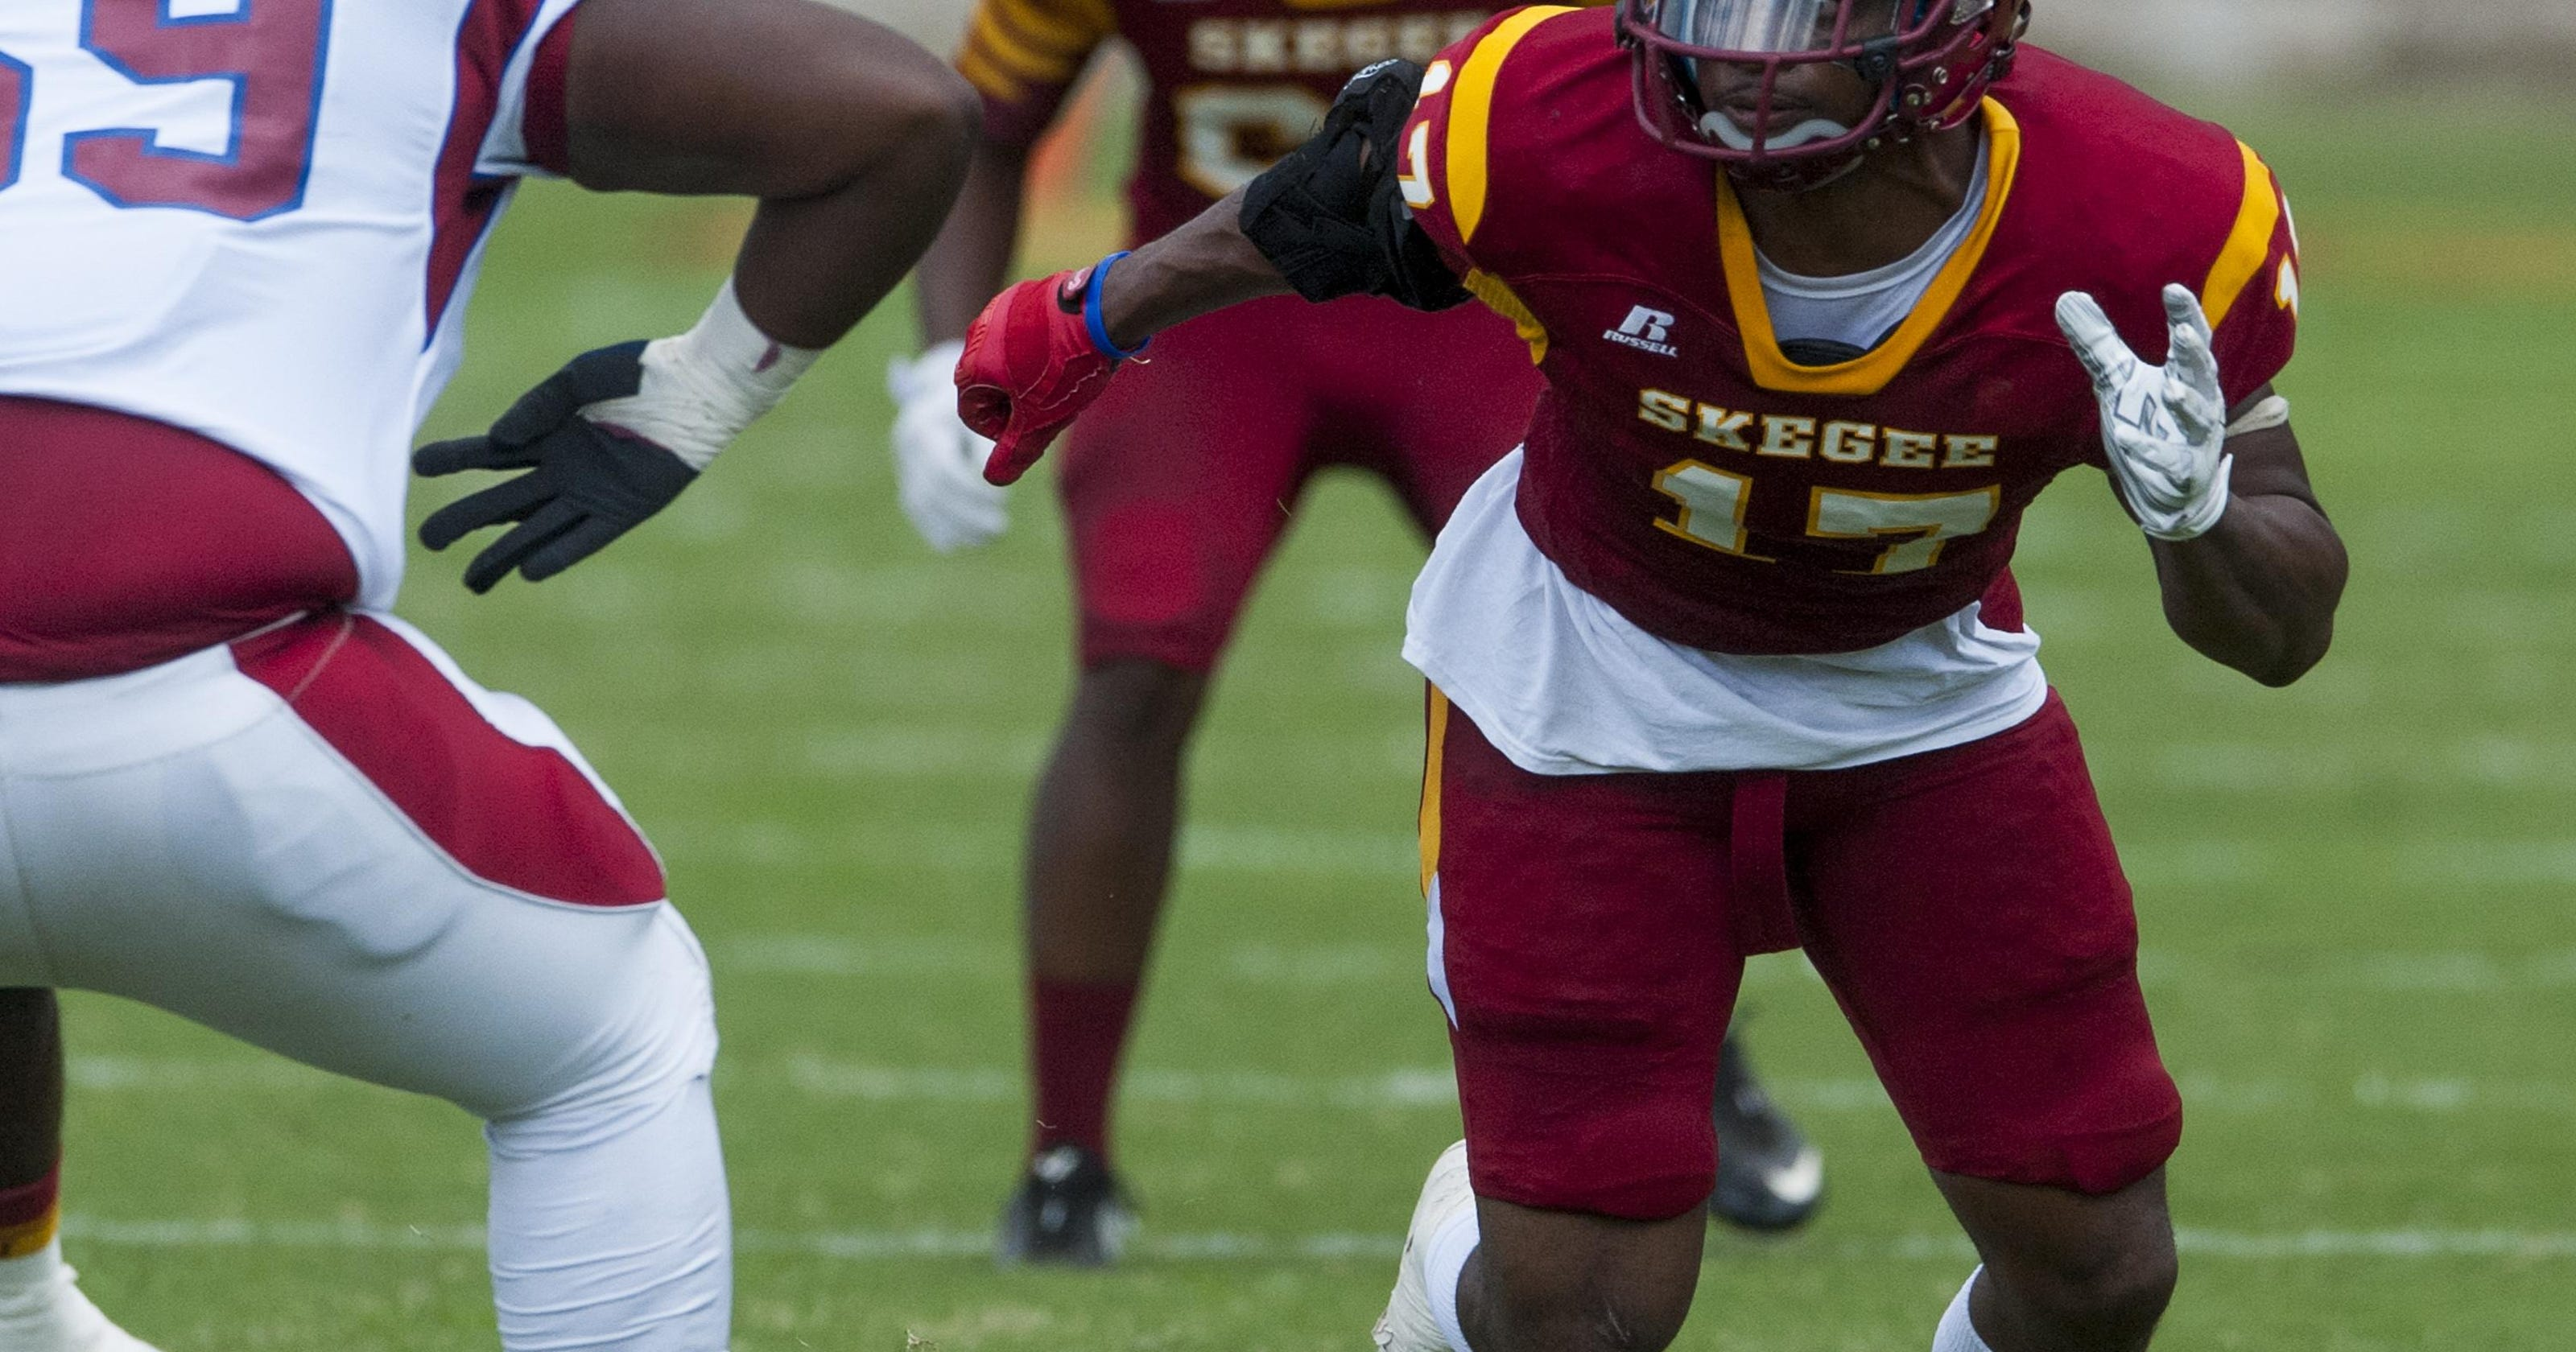 newest d1143 25dc7 Preview: Kentucky State at No. 5 Tuskegee